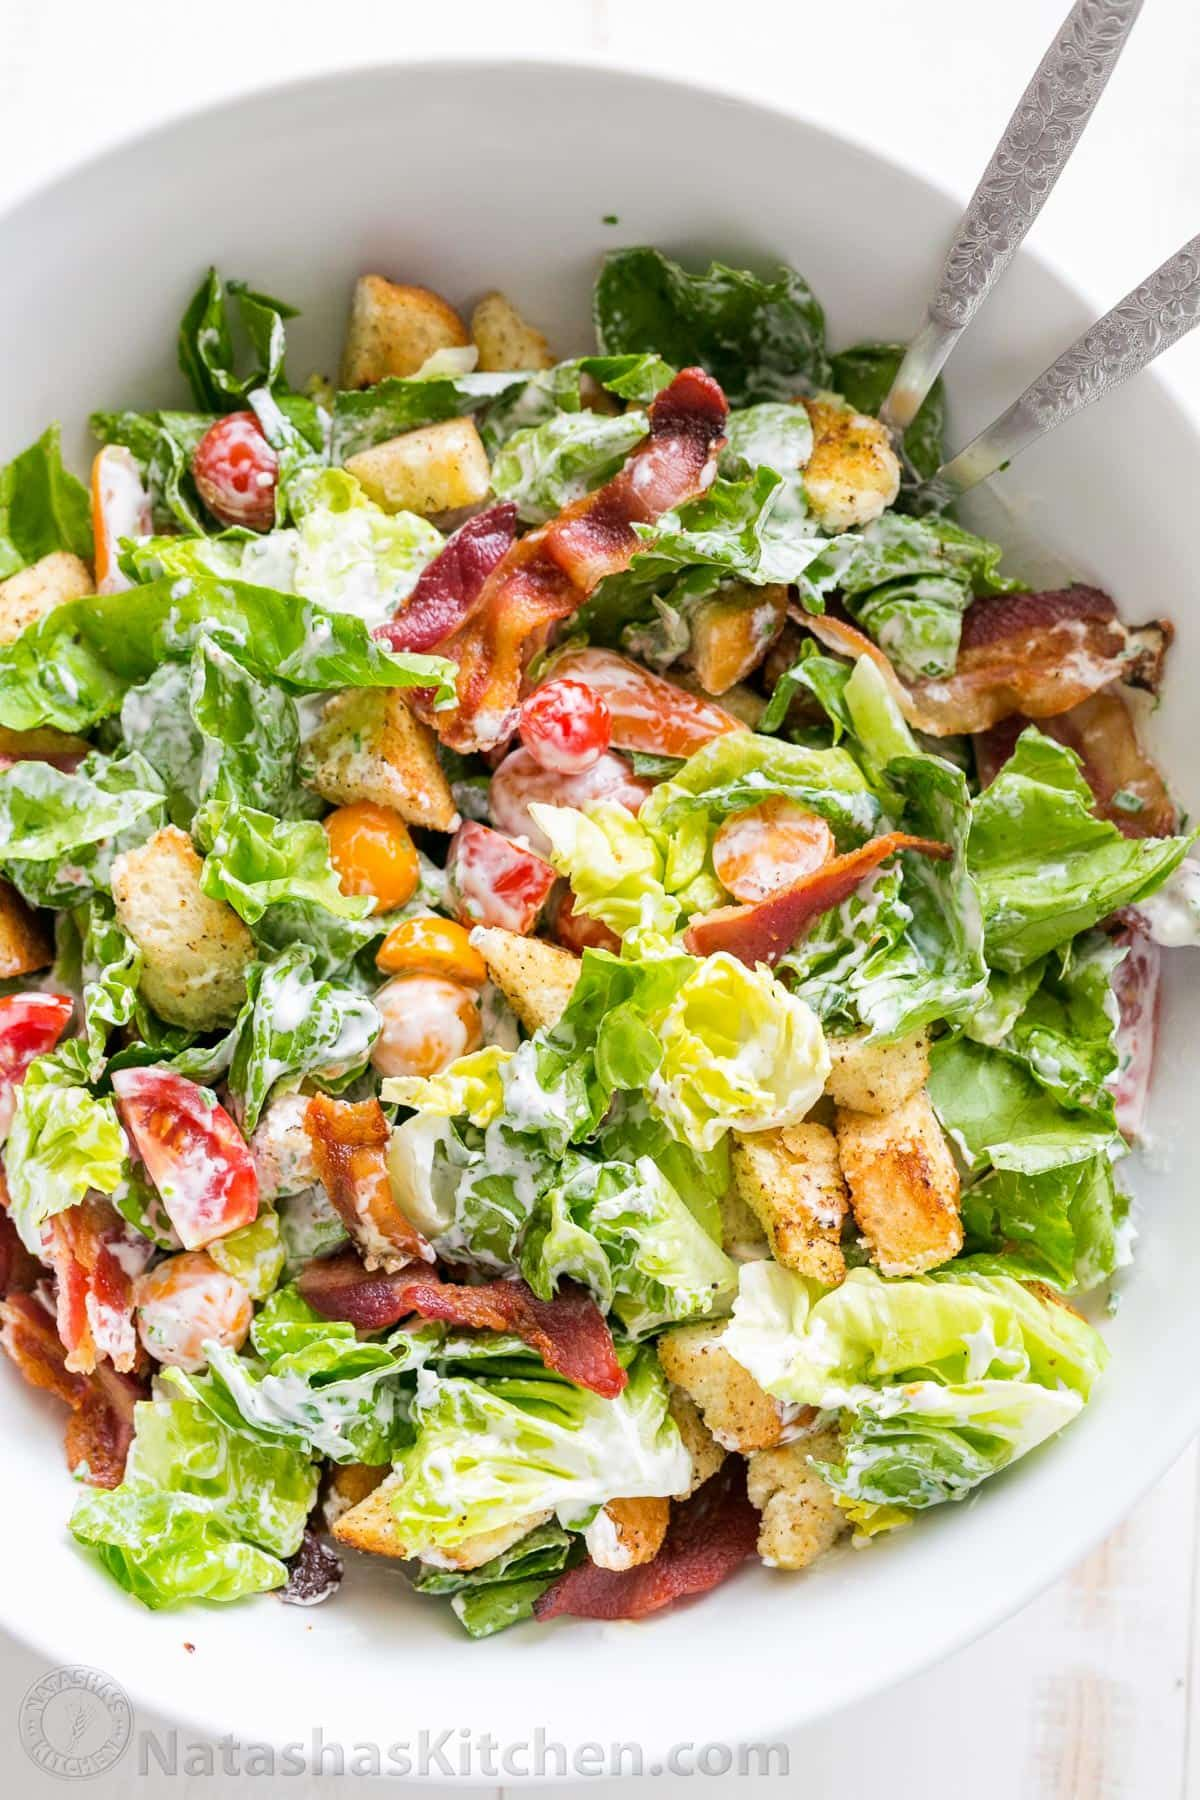 Crunchy Green Salad with Croutons Recipe pictures